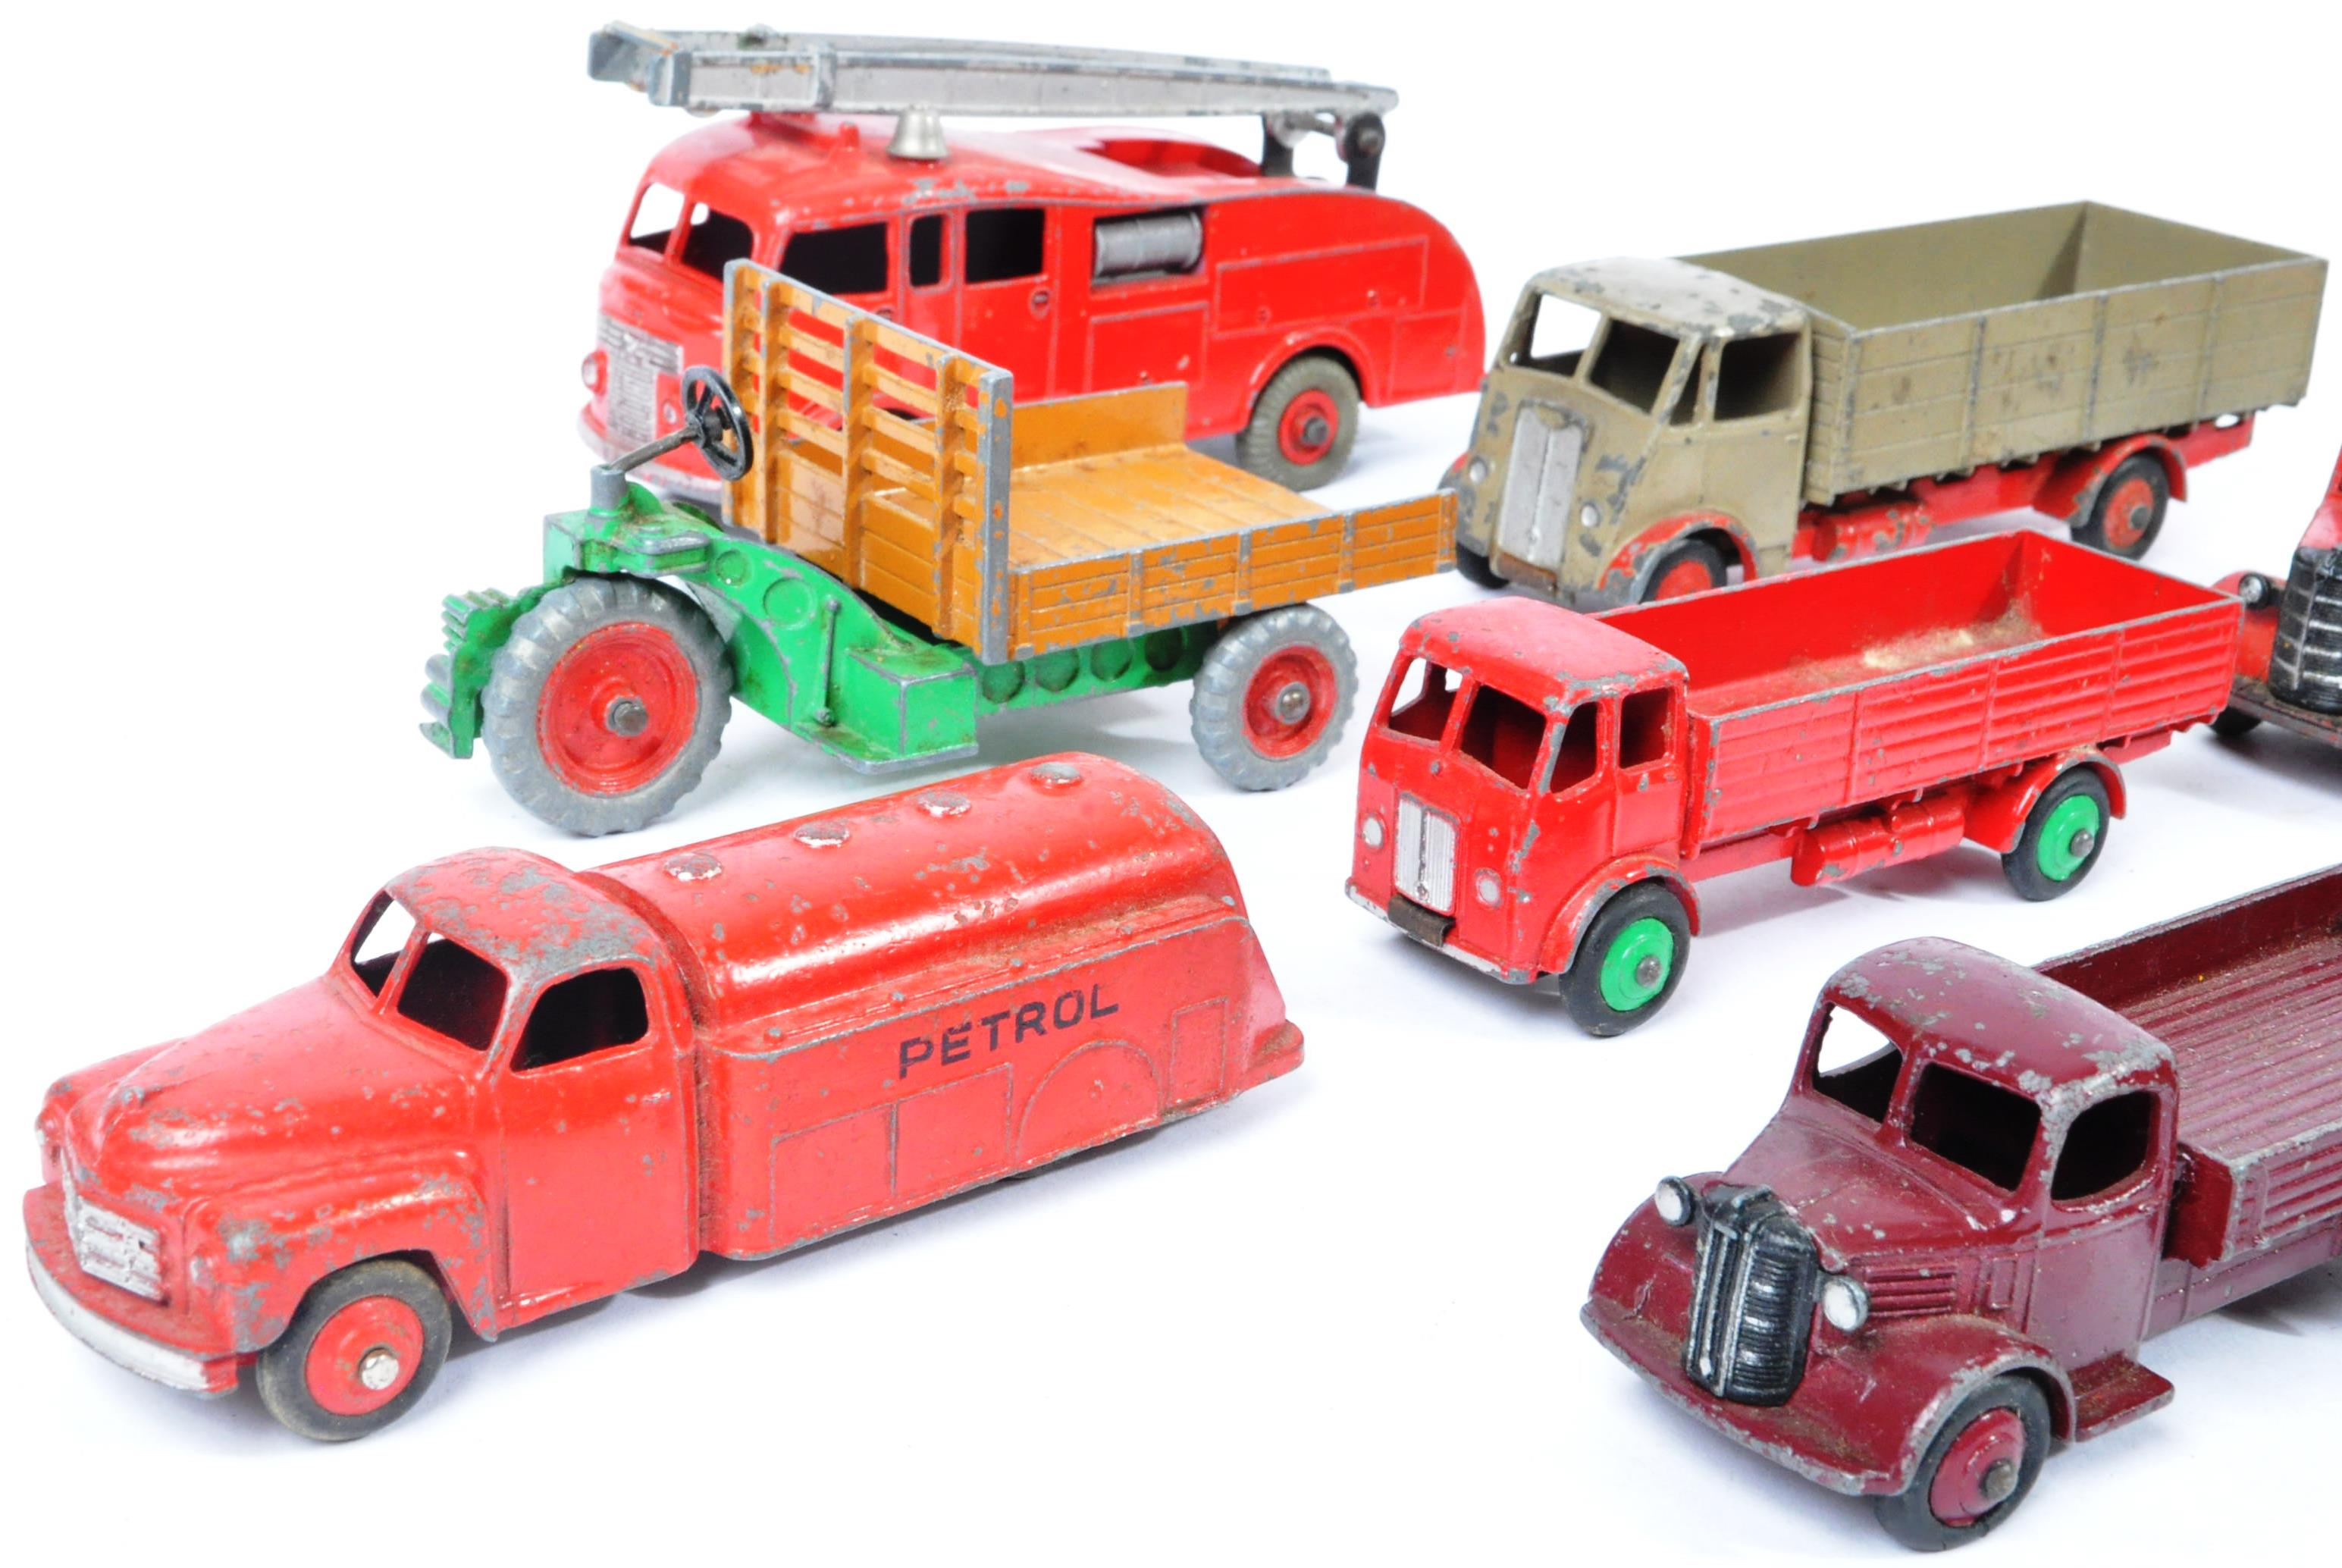 COLLECTION OF X10 VINTAGE DINKY TOYS DIECAST MODEL TRUCKS - Image 10 of 14